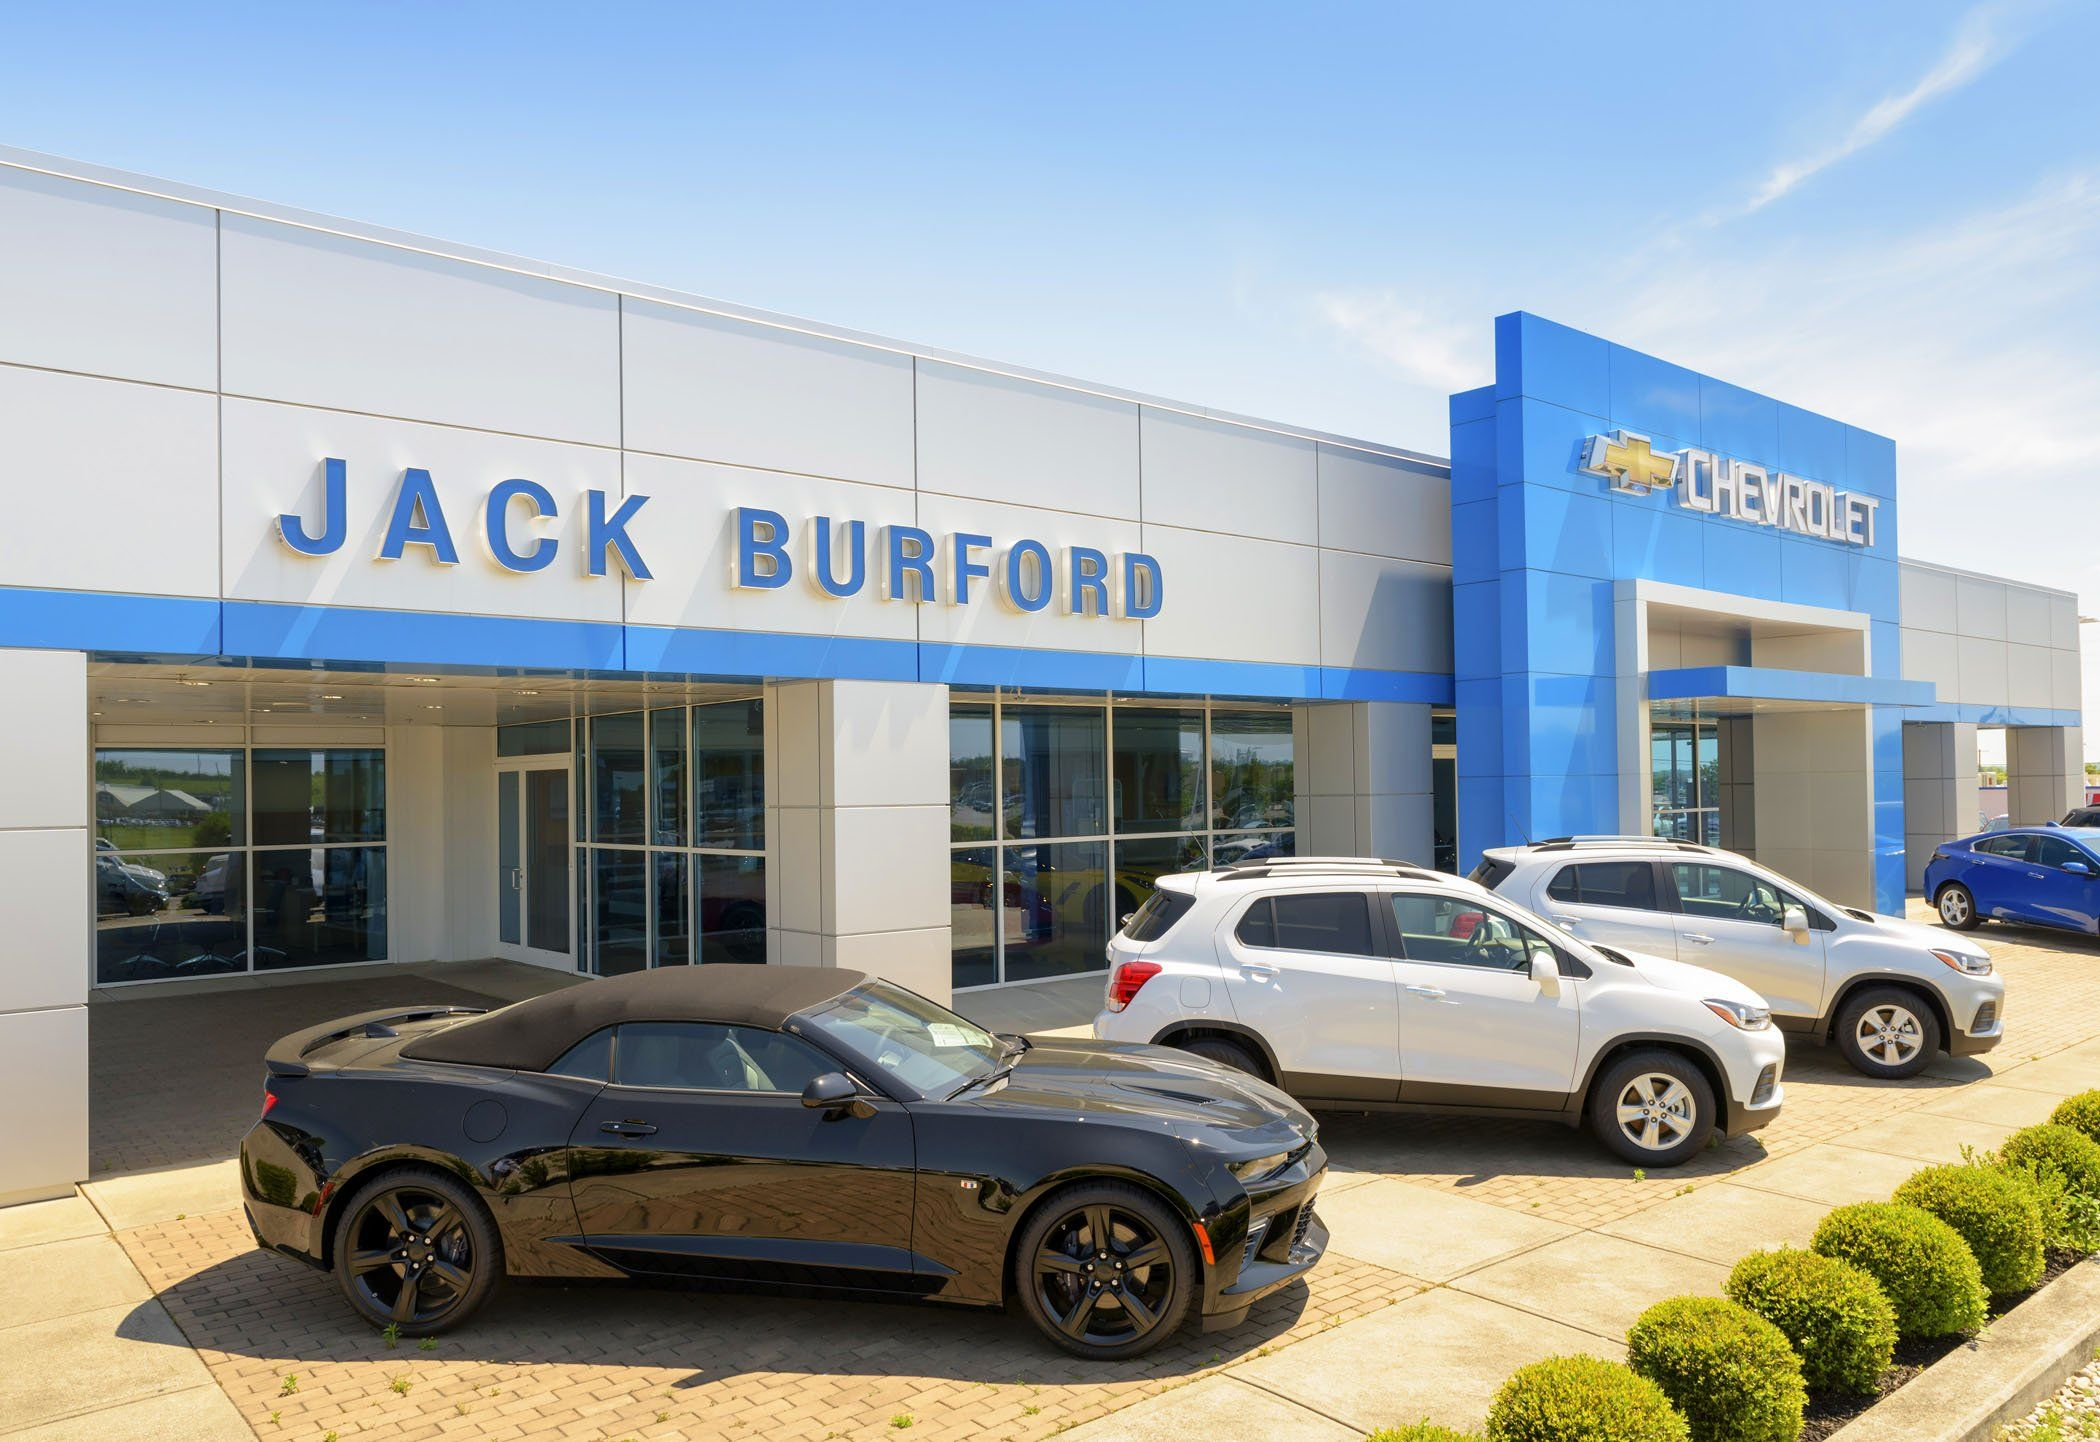 camaro or an incredibly strong silverado your new car waits at jack burford chevrolet we re proud to call ourselves one of the best car dealerships